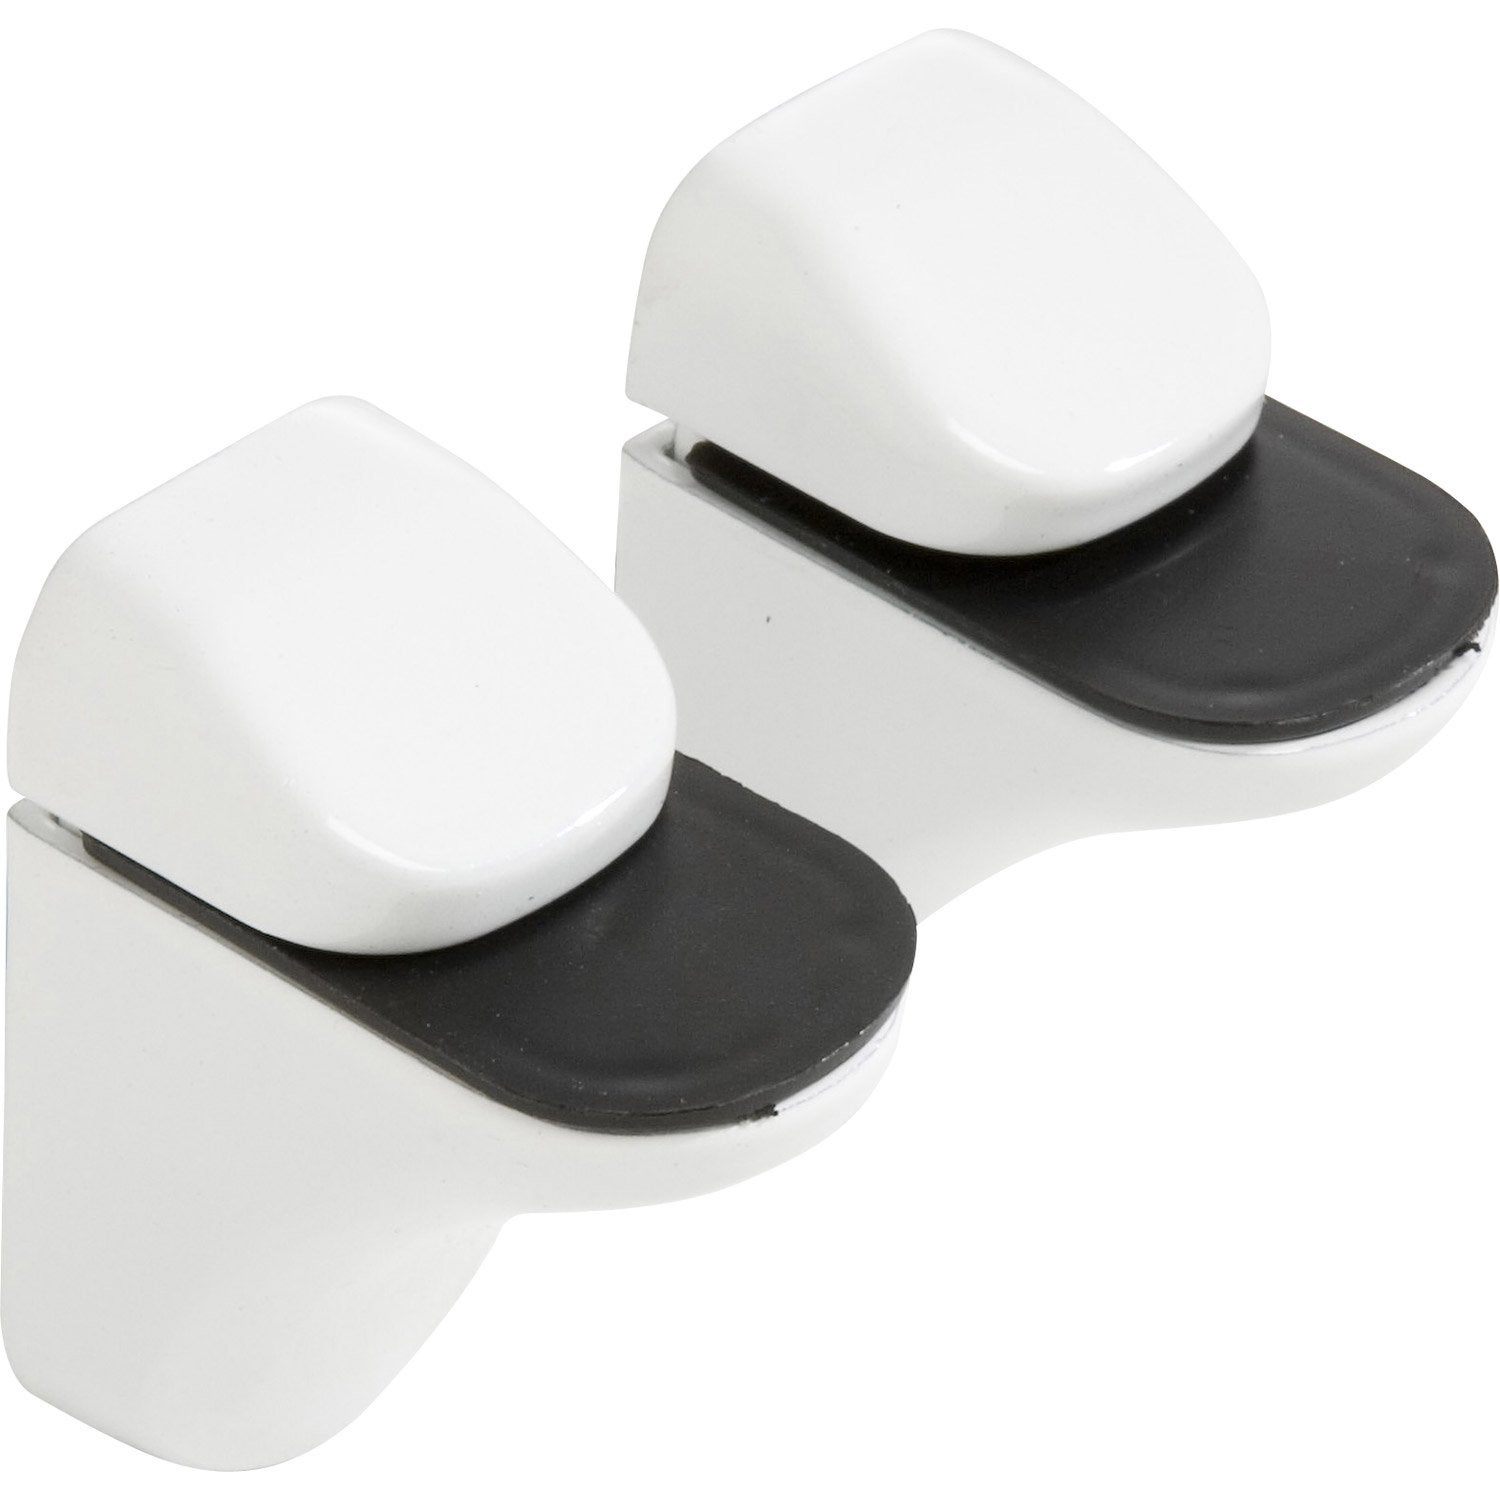 Lot de 2 supports tablette pince blanc laqu leroy merlin - Planche laque blanc ...